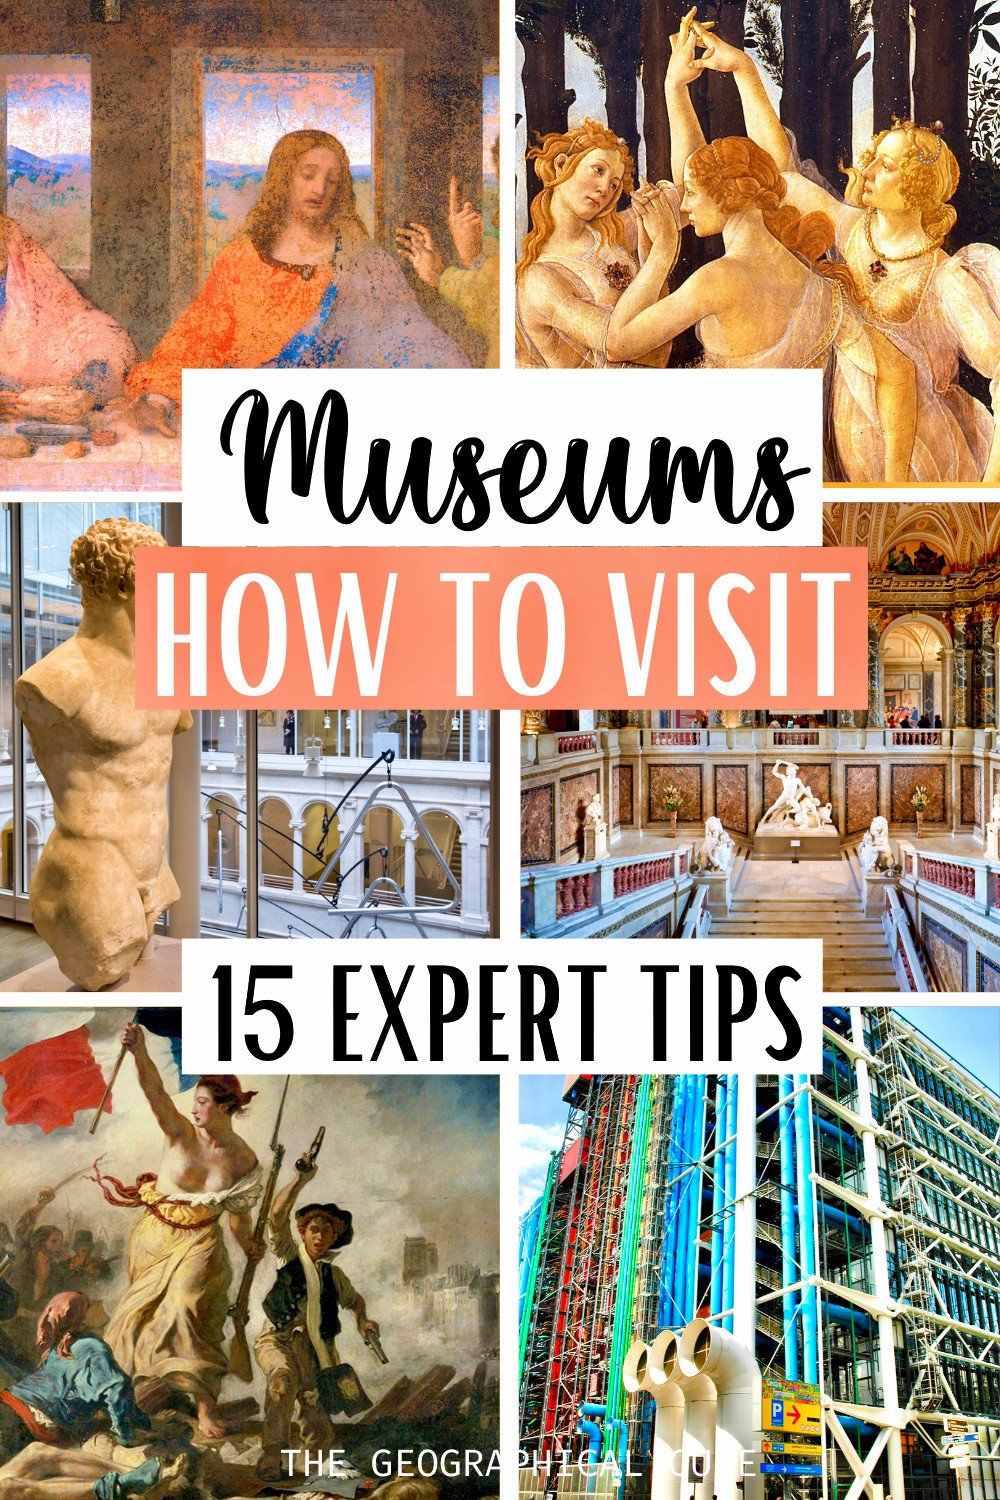 expert tips fro visiting a museum and having an enjoyable experience